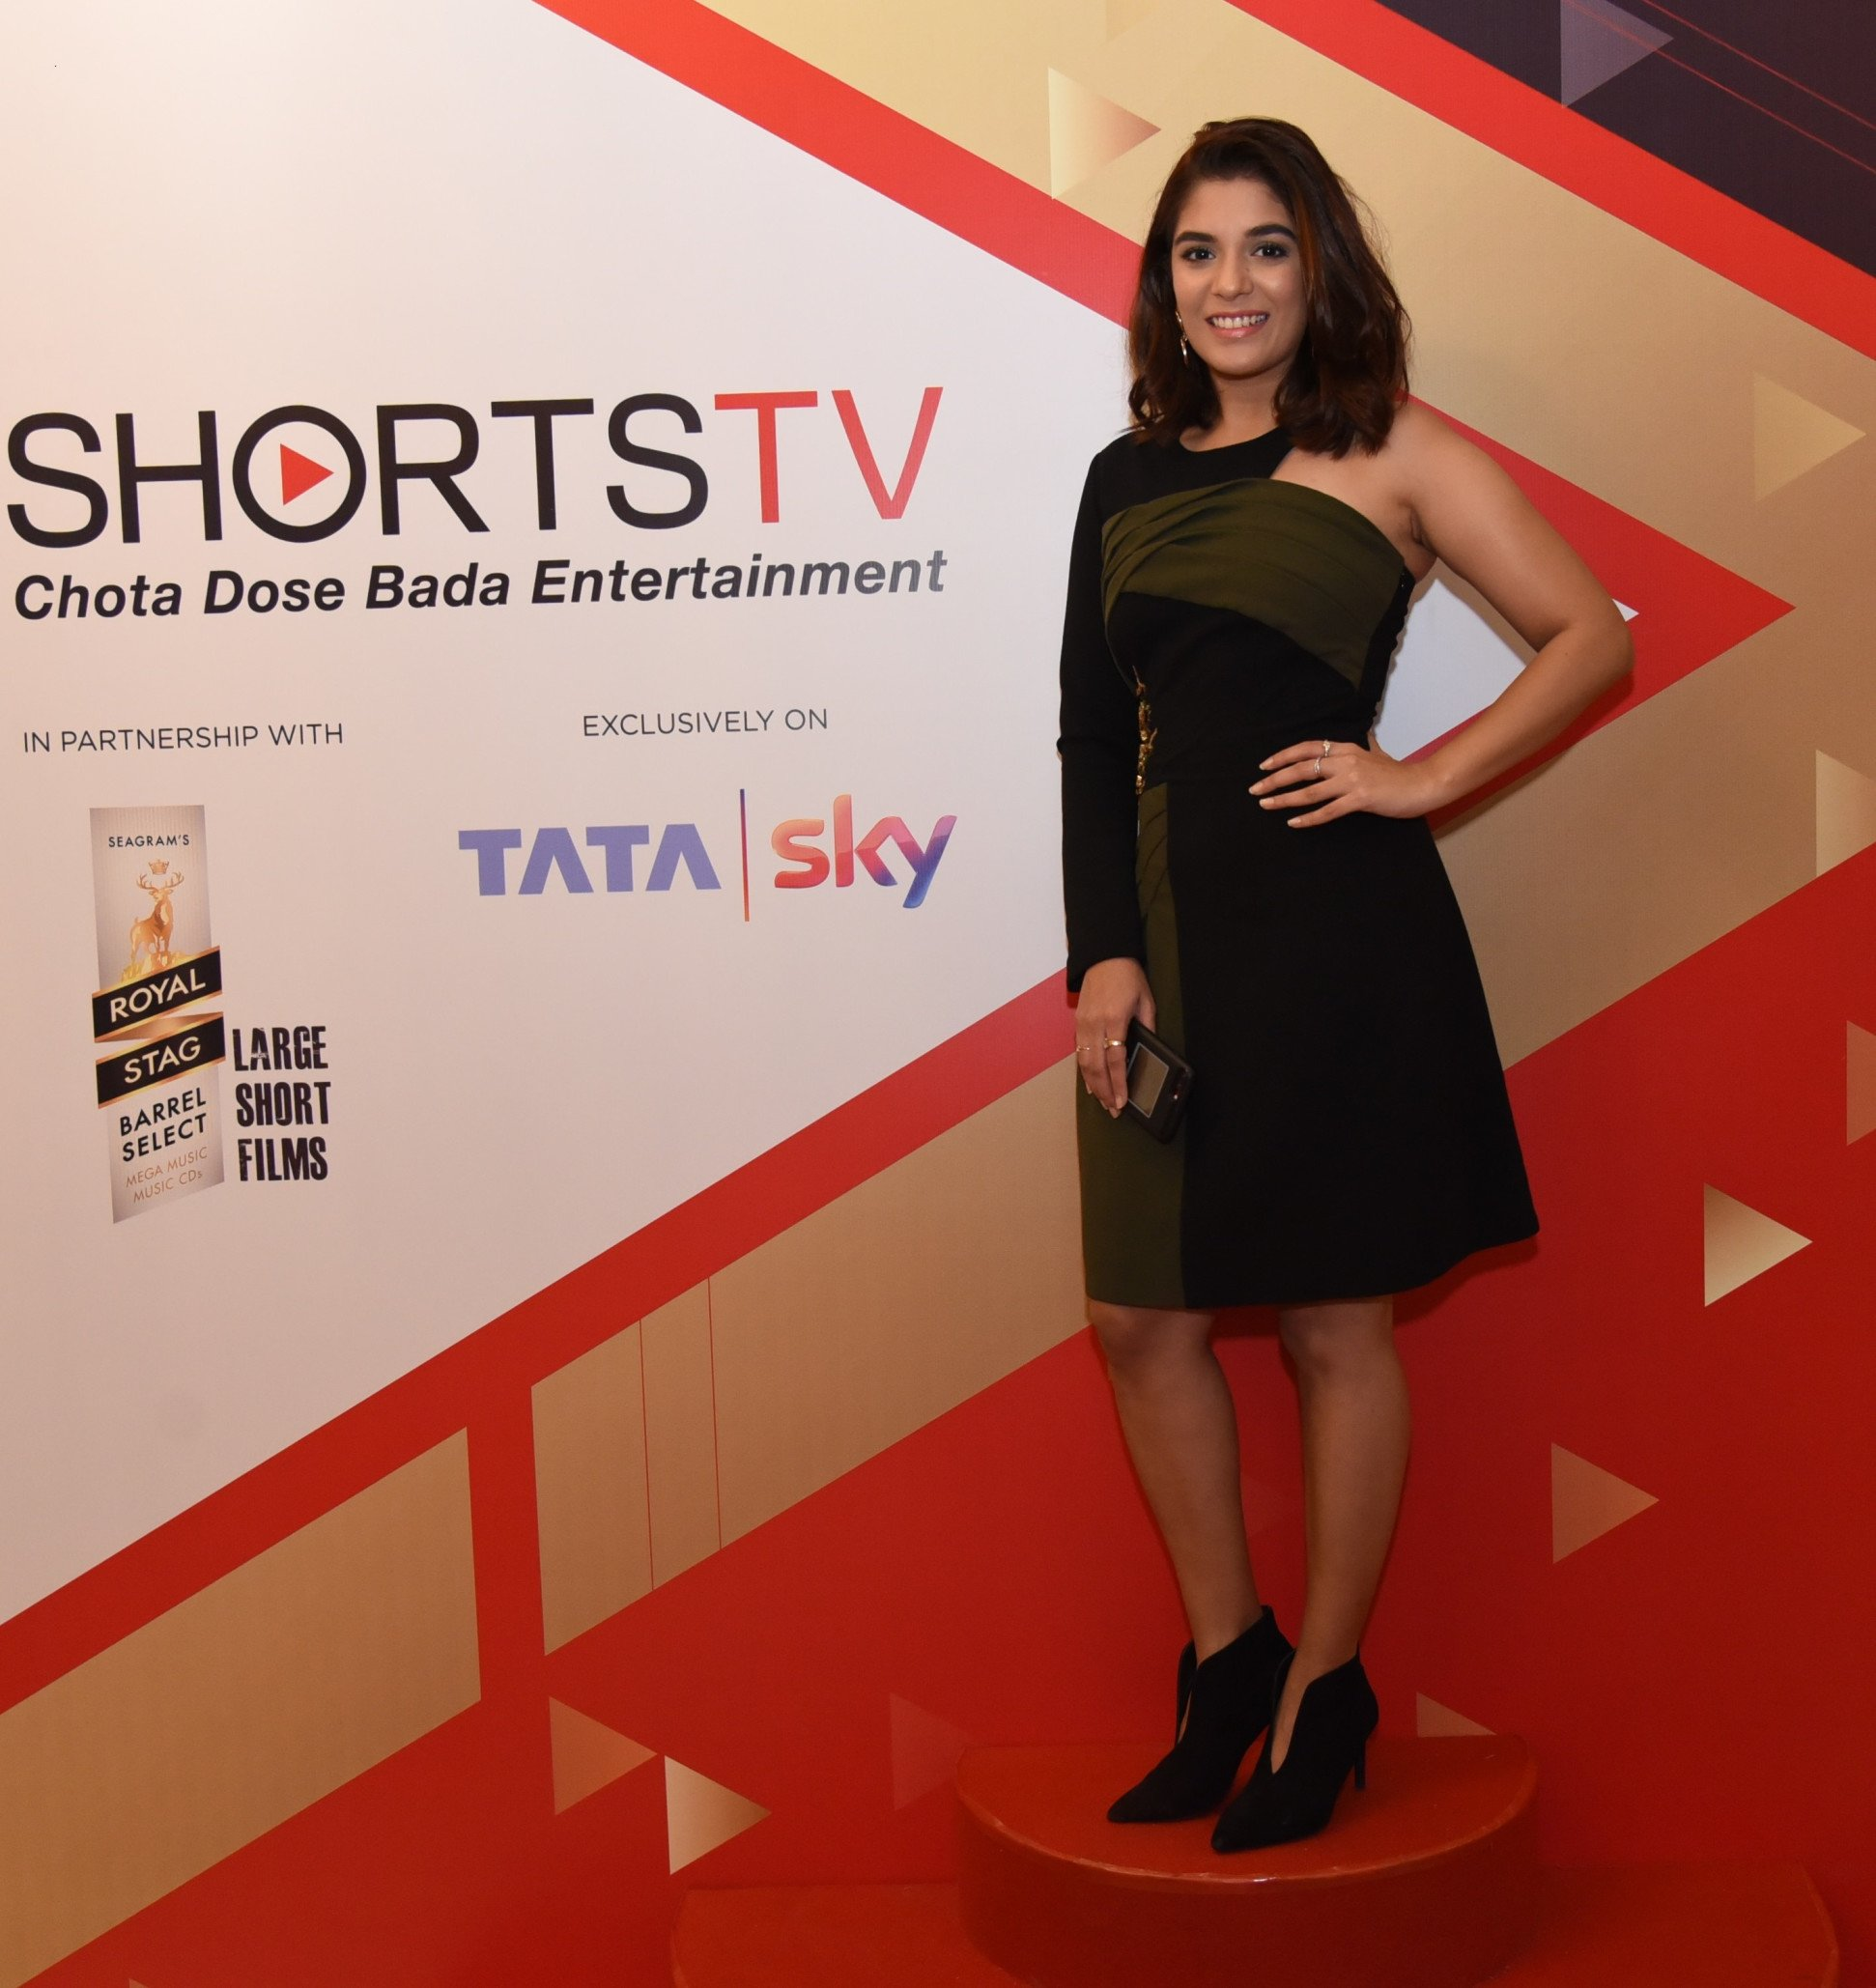 ShortsTV dedicated to short films launched in India